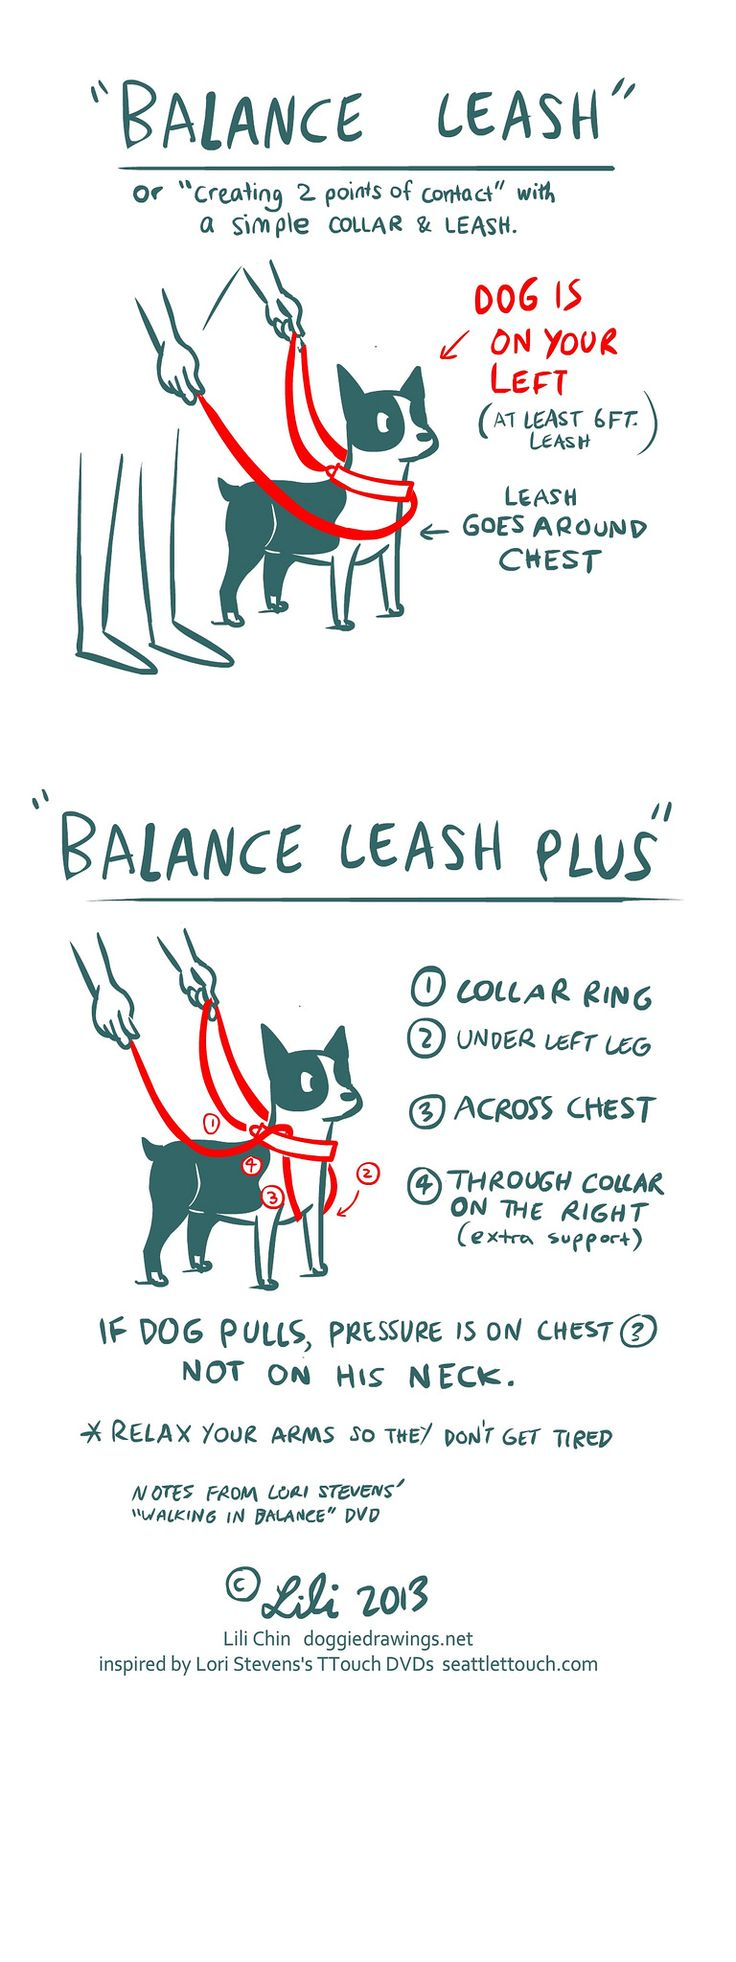 https://flic.kr/p/nXvm8N | Boogie TTOUCH notes: BALANCE LEASH | Copyright 2014 Lili Chin